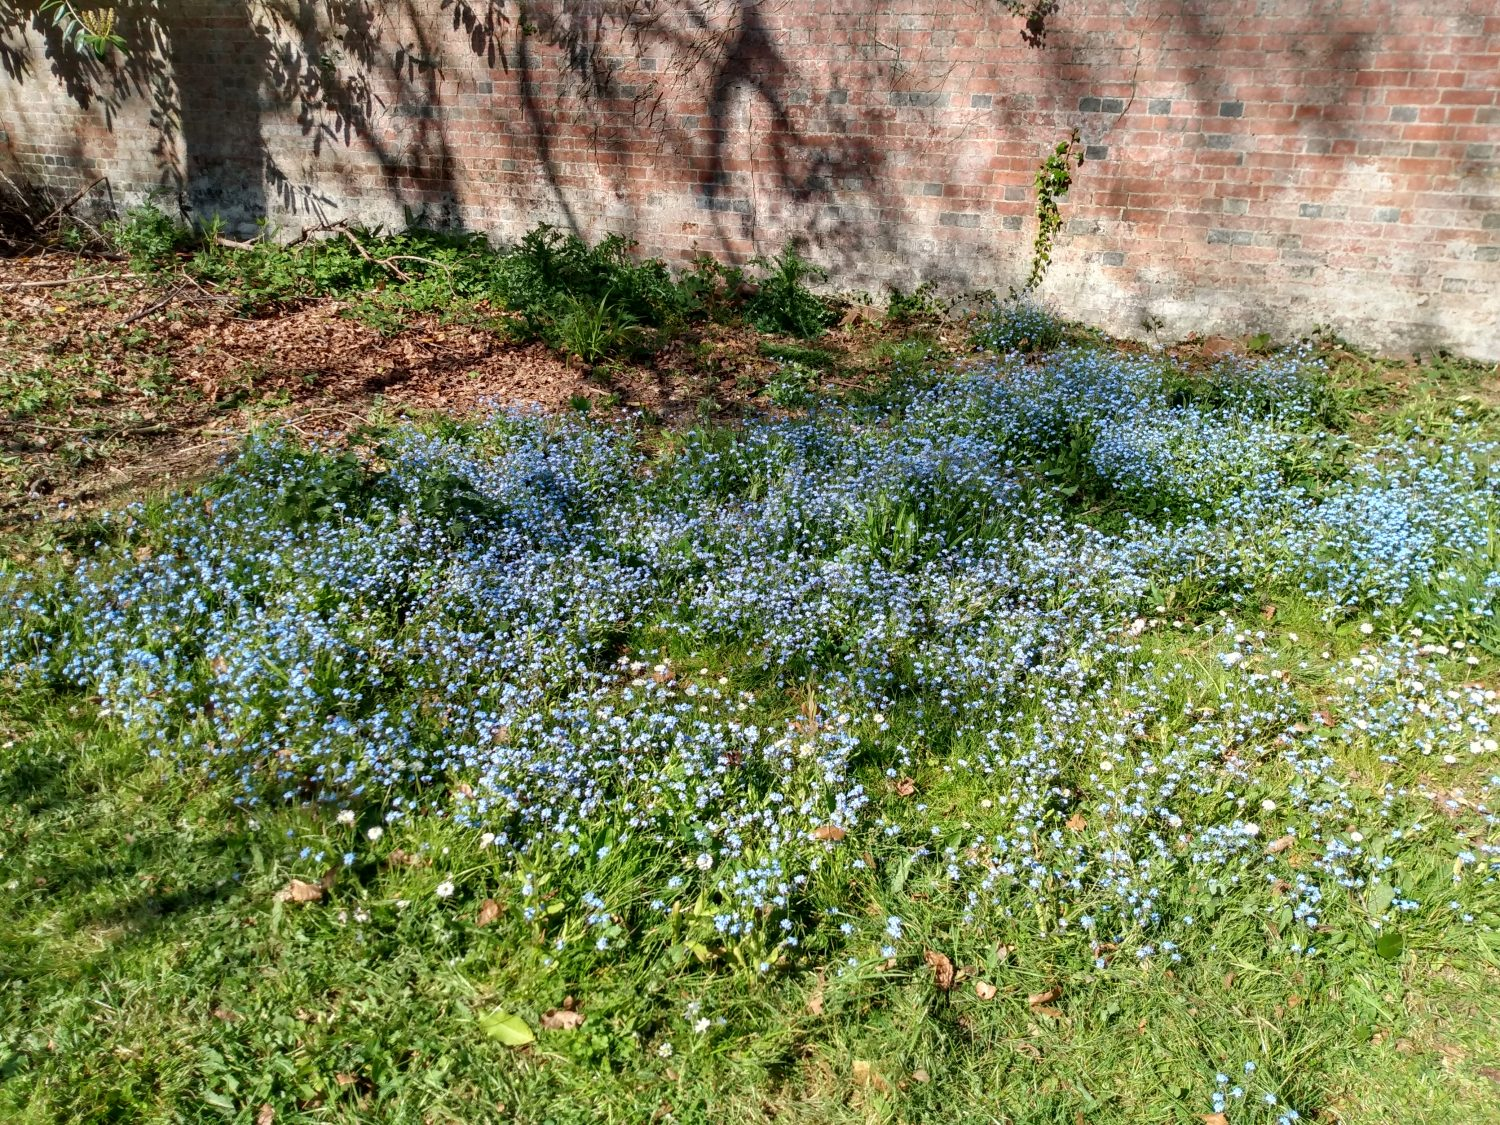 Large group of forget-me-knots growing in front of walled garden brick wall